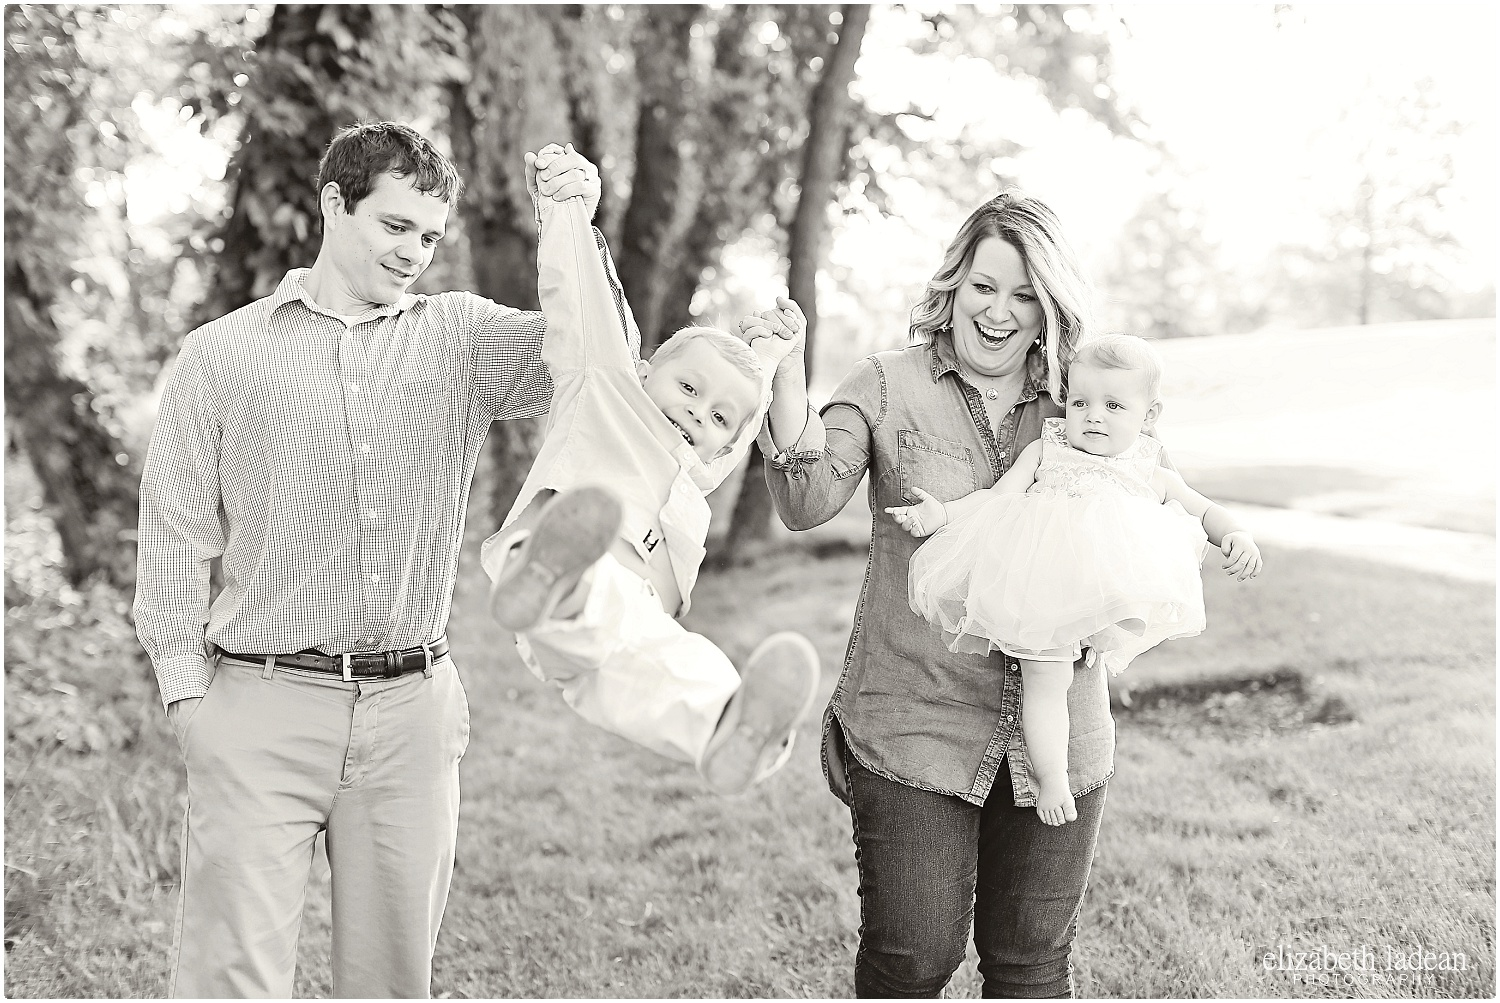 Sar-Ko-Park-Family-Photos-Kansas-HFam-ElizabethLadeanPhotography-photo_6211.jpg